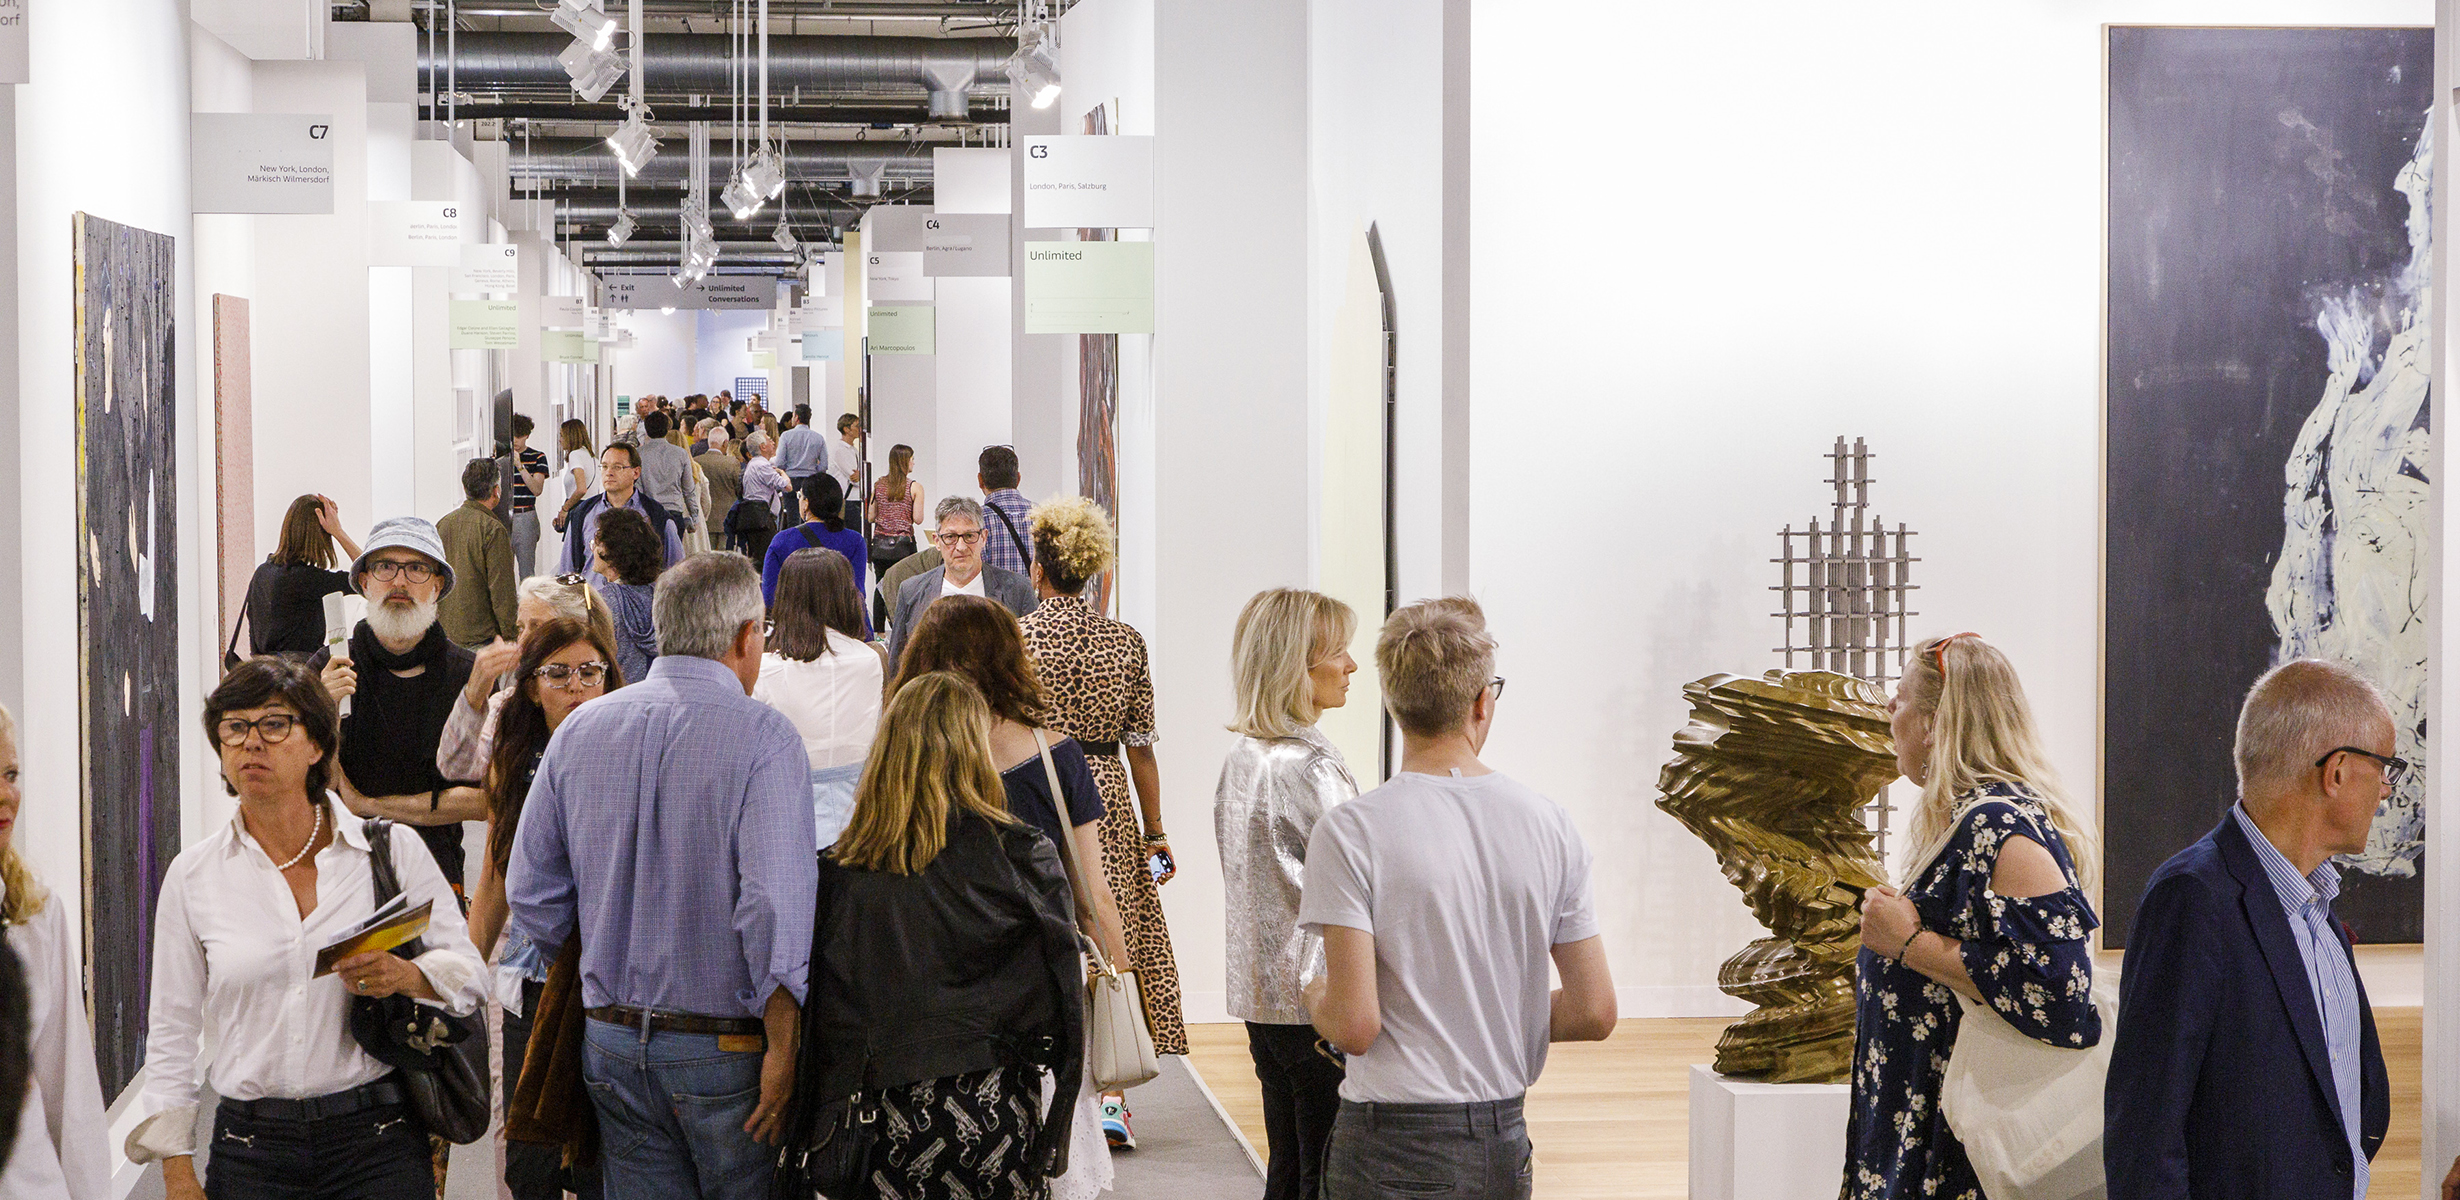 New regulations cast doubt on Art Basel's September 2020 Edition